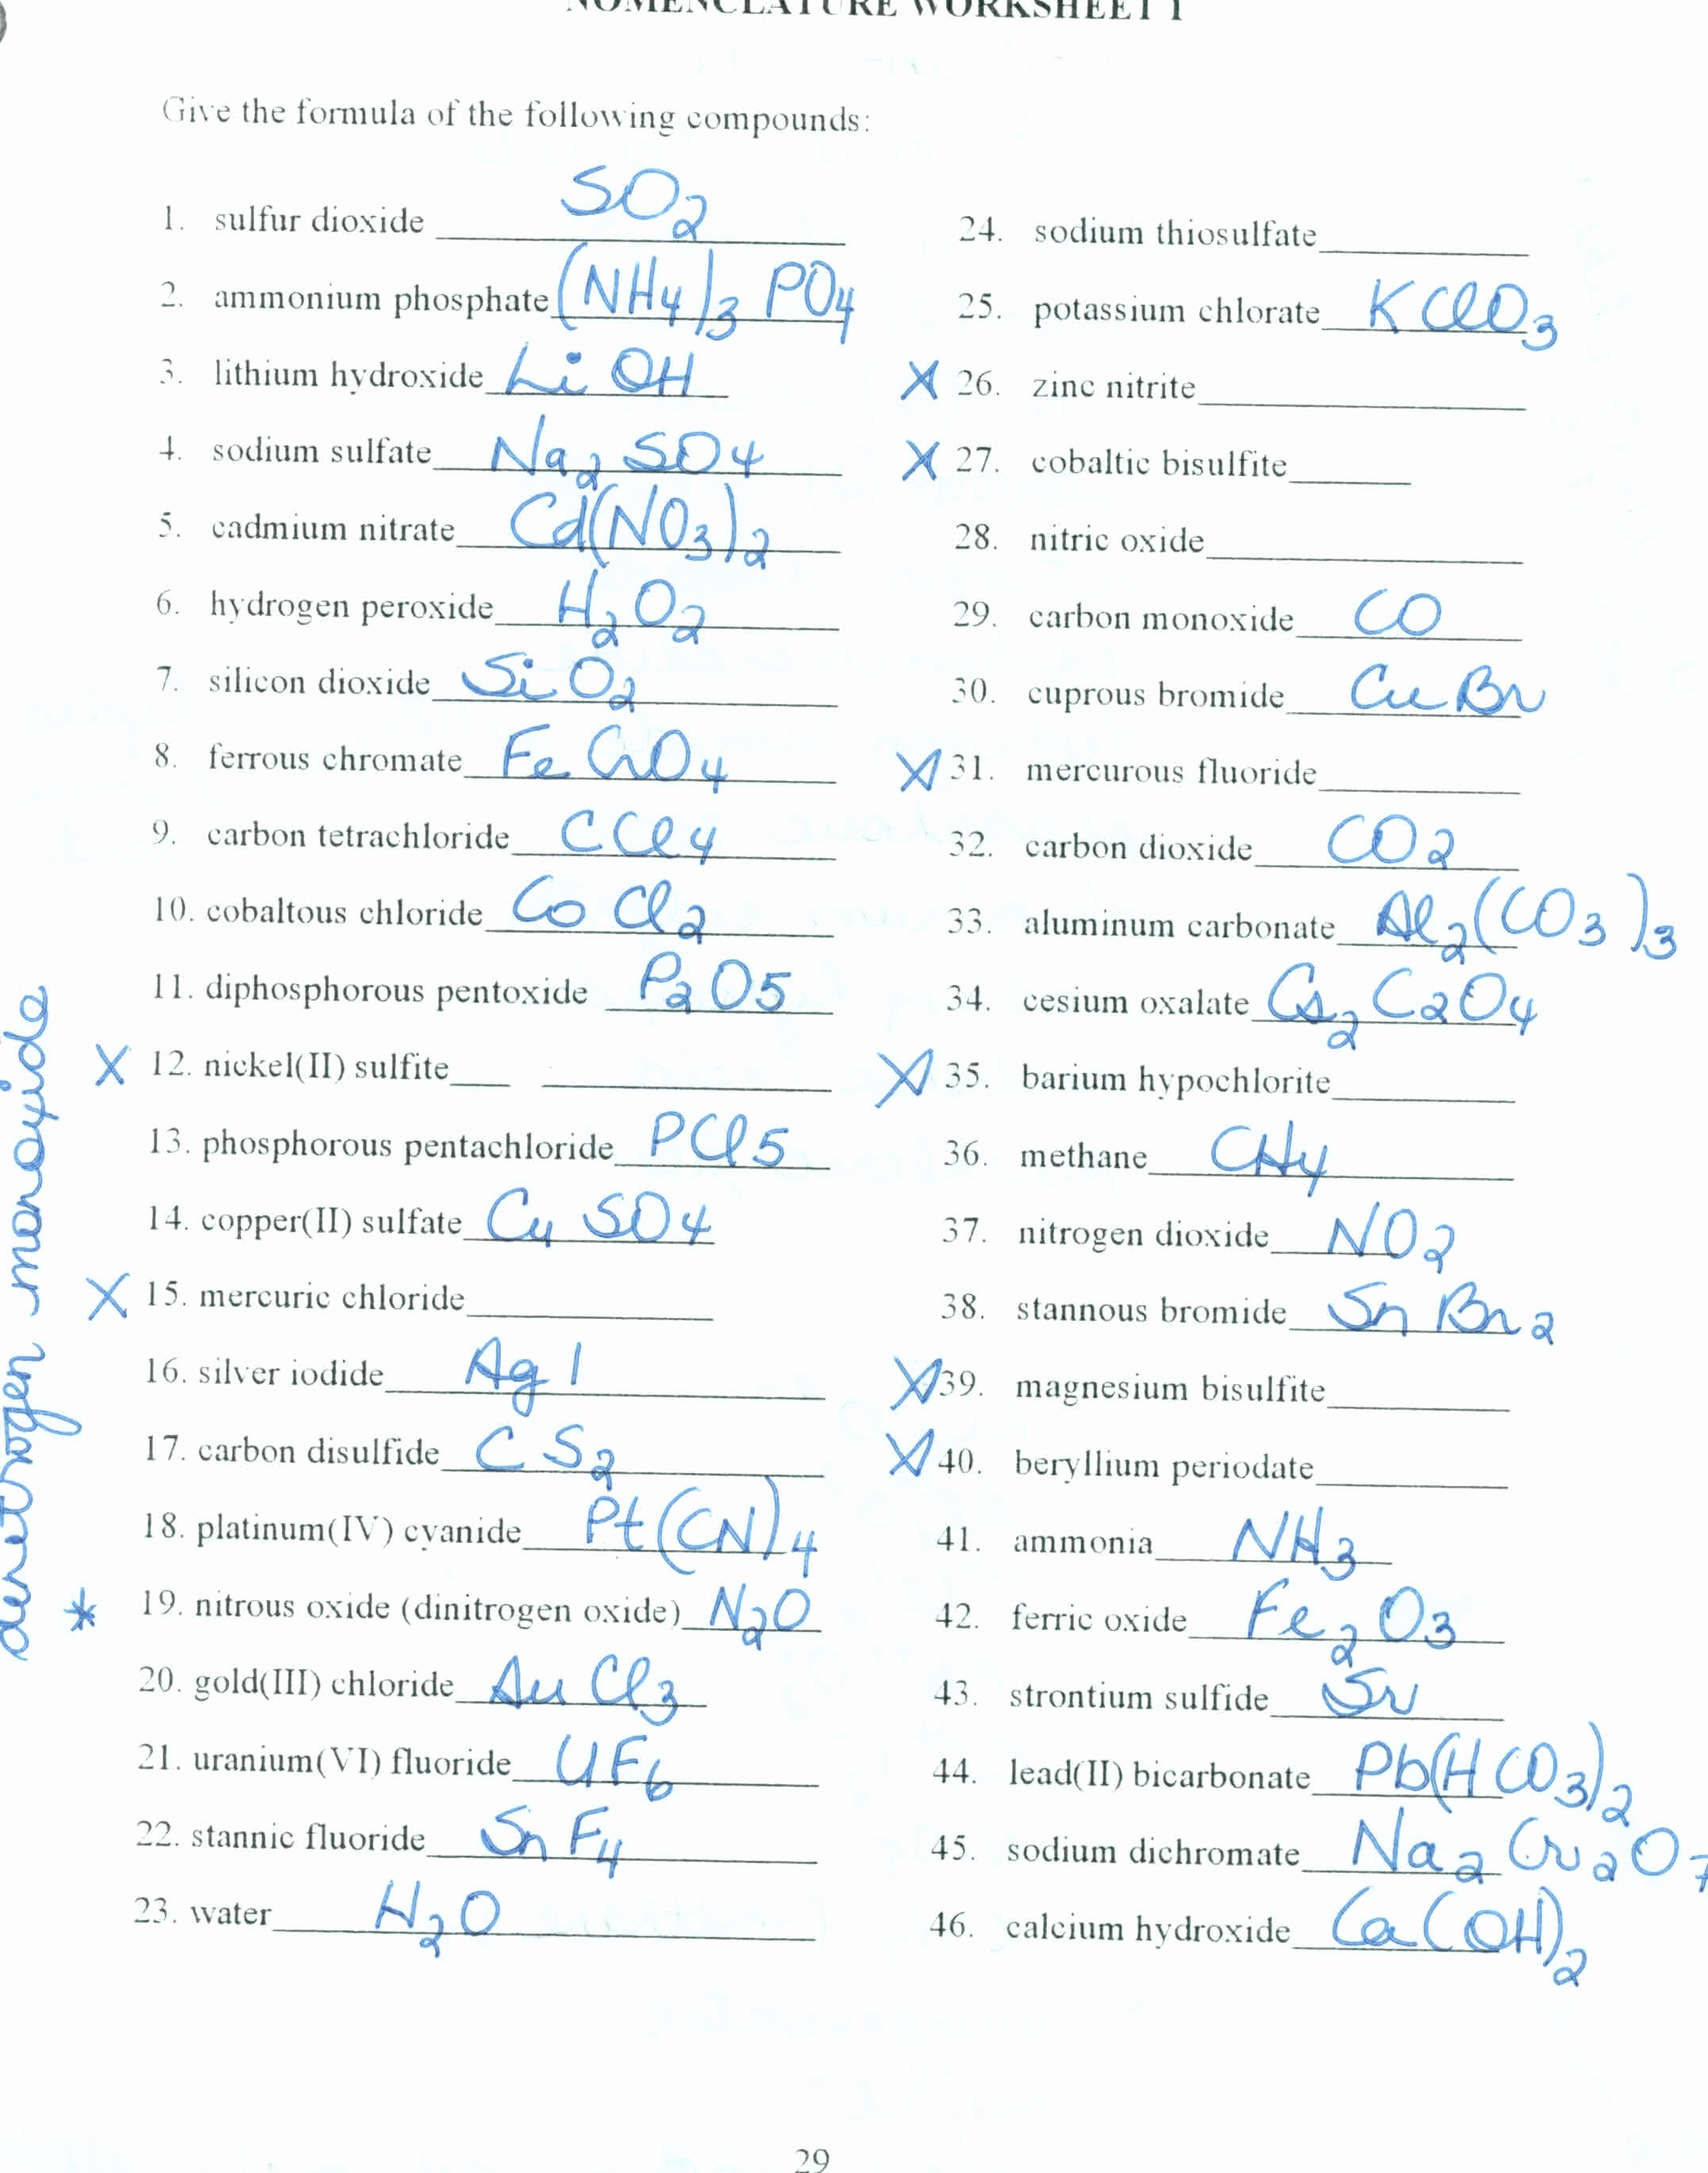 Chemical Nomenclature Worksheets